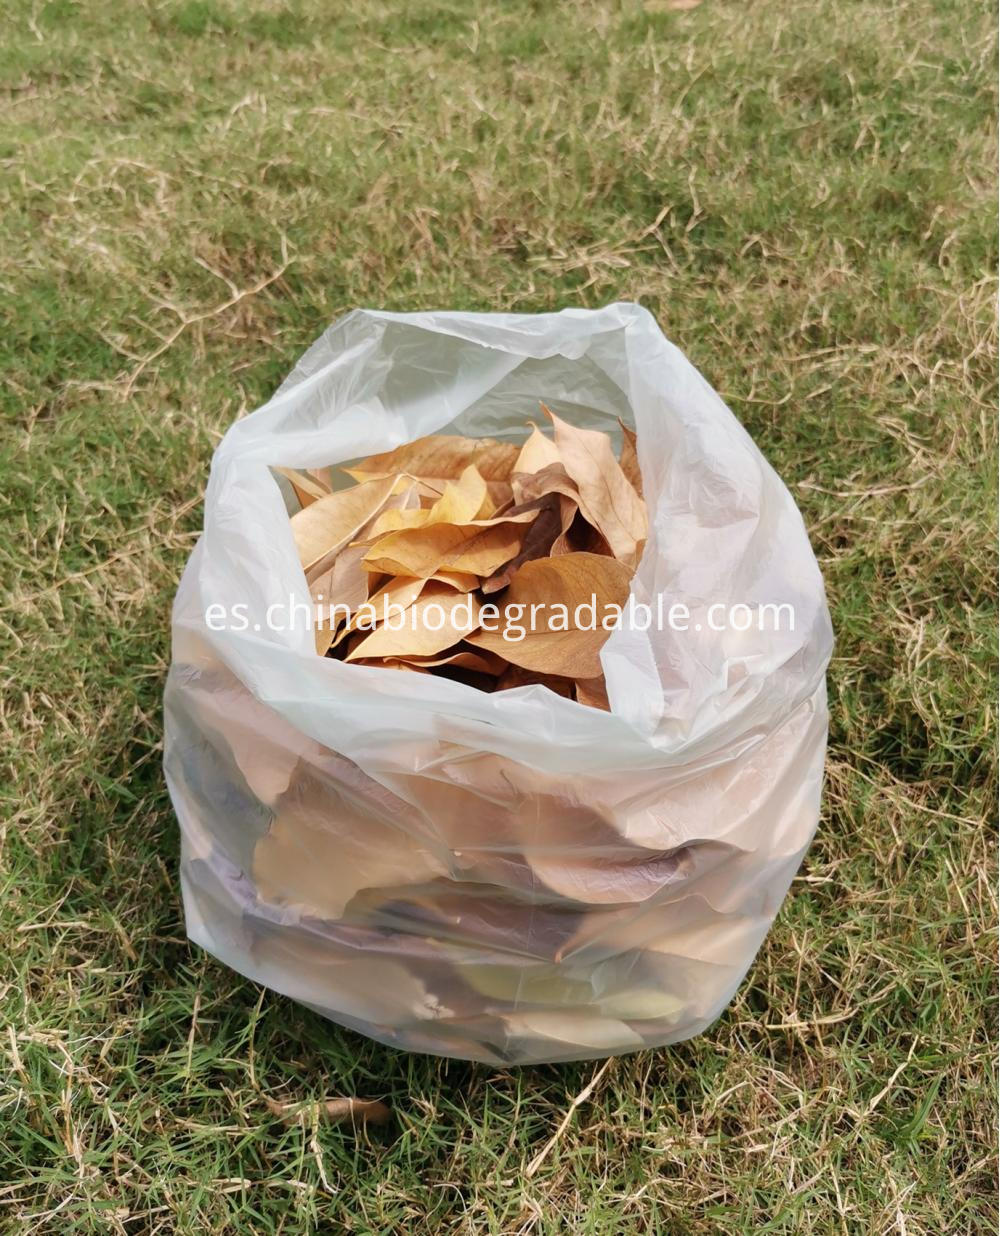 ASTM D6400 Biodegradable Garden Yard Waste Bags